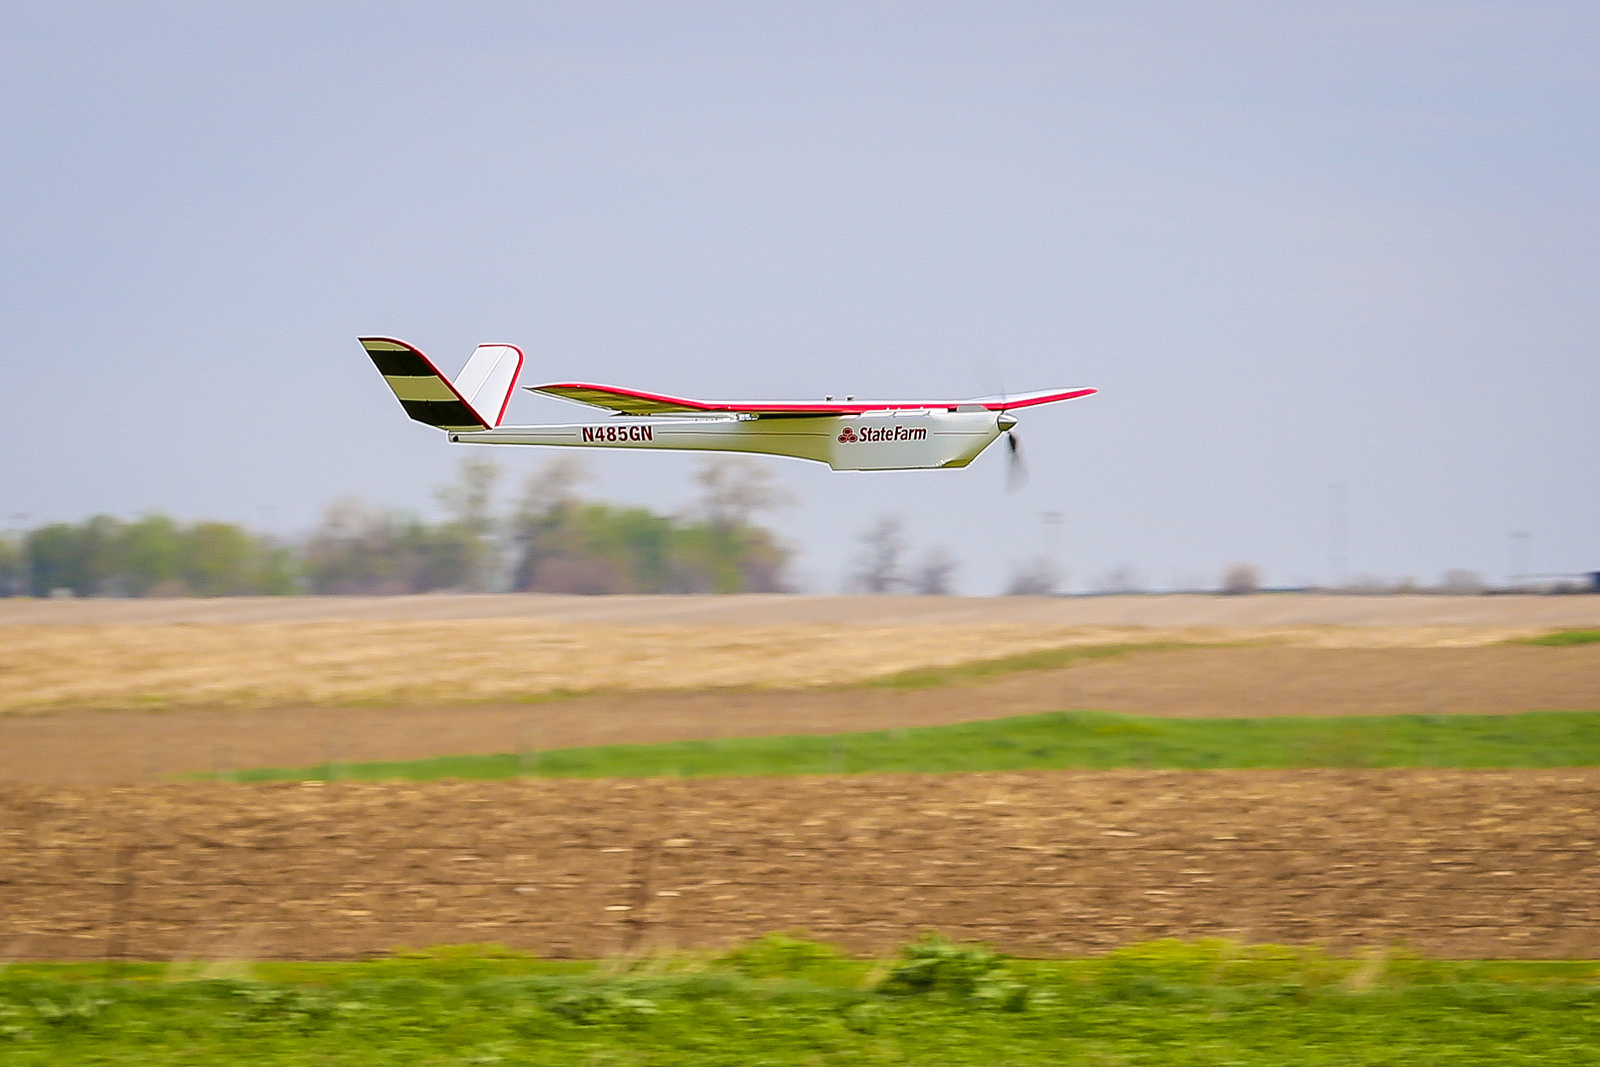 State Farm UAS – Altavian, State Farm April 24, 2015